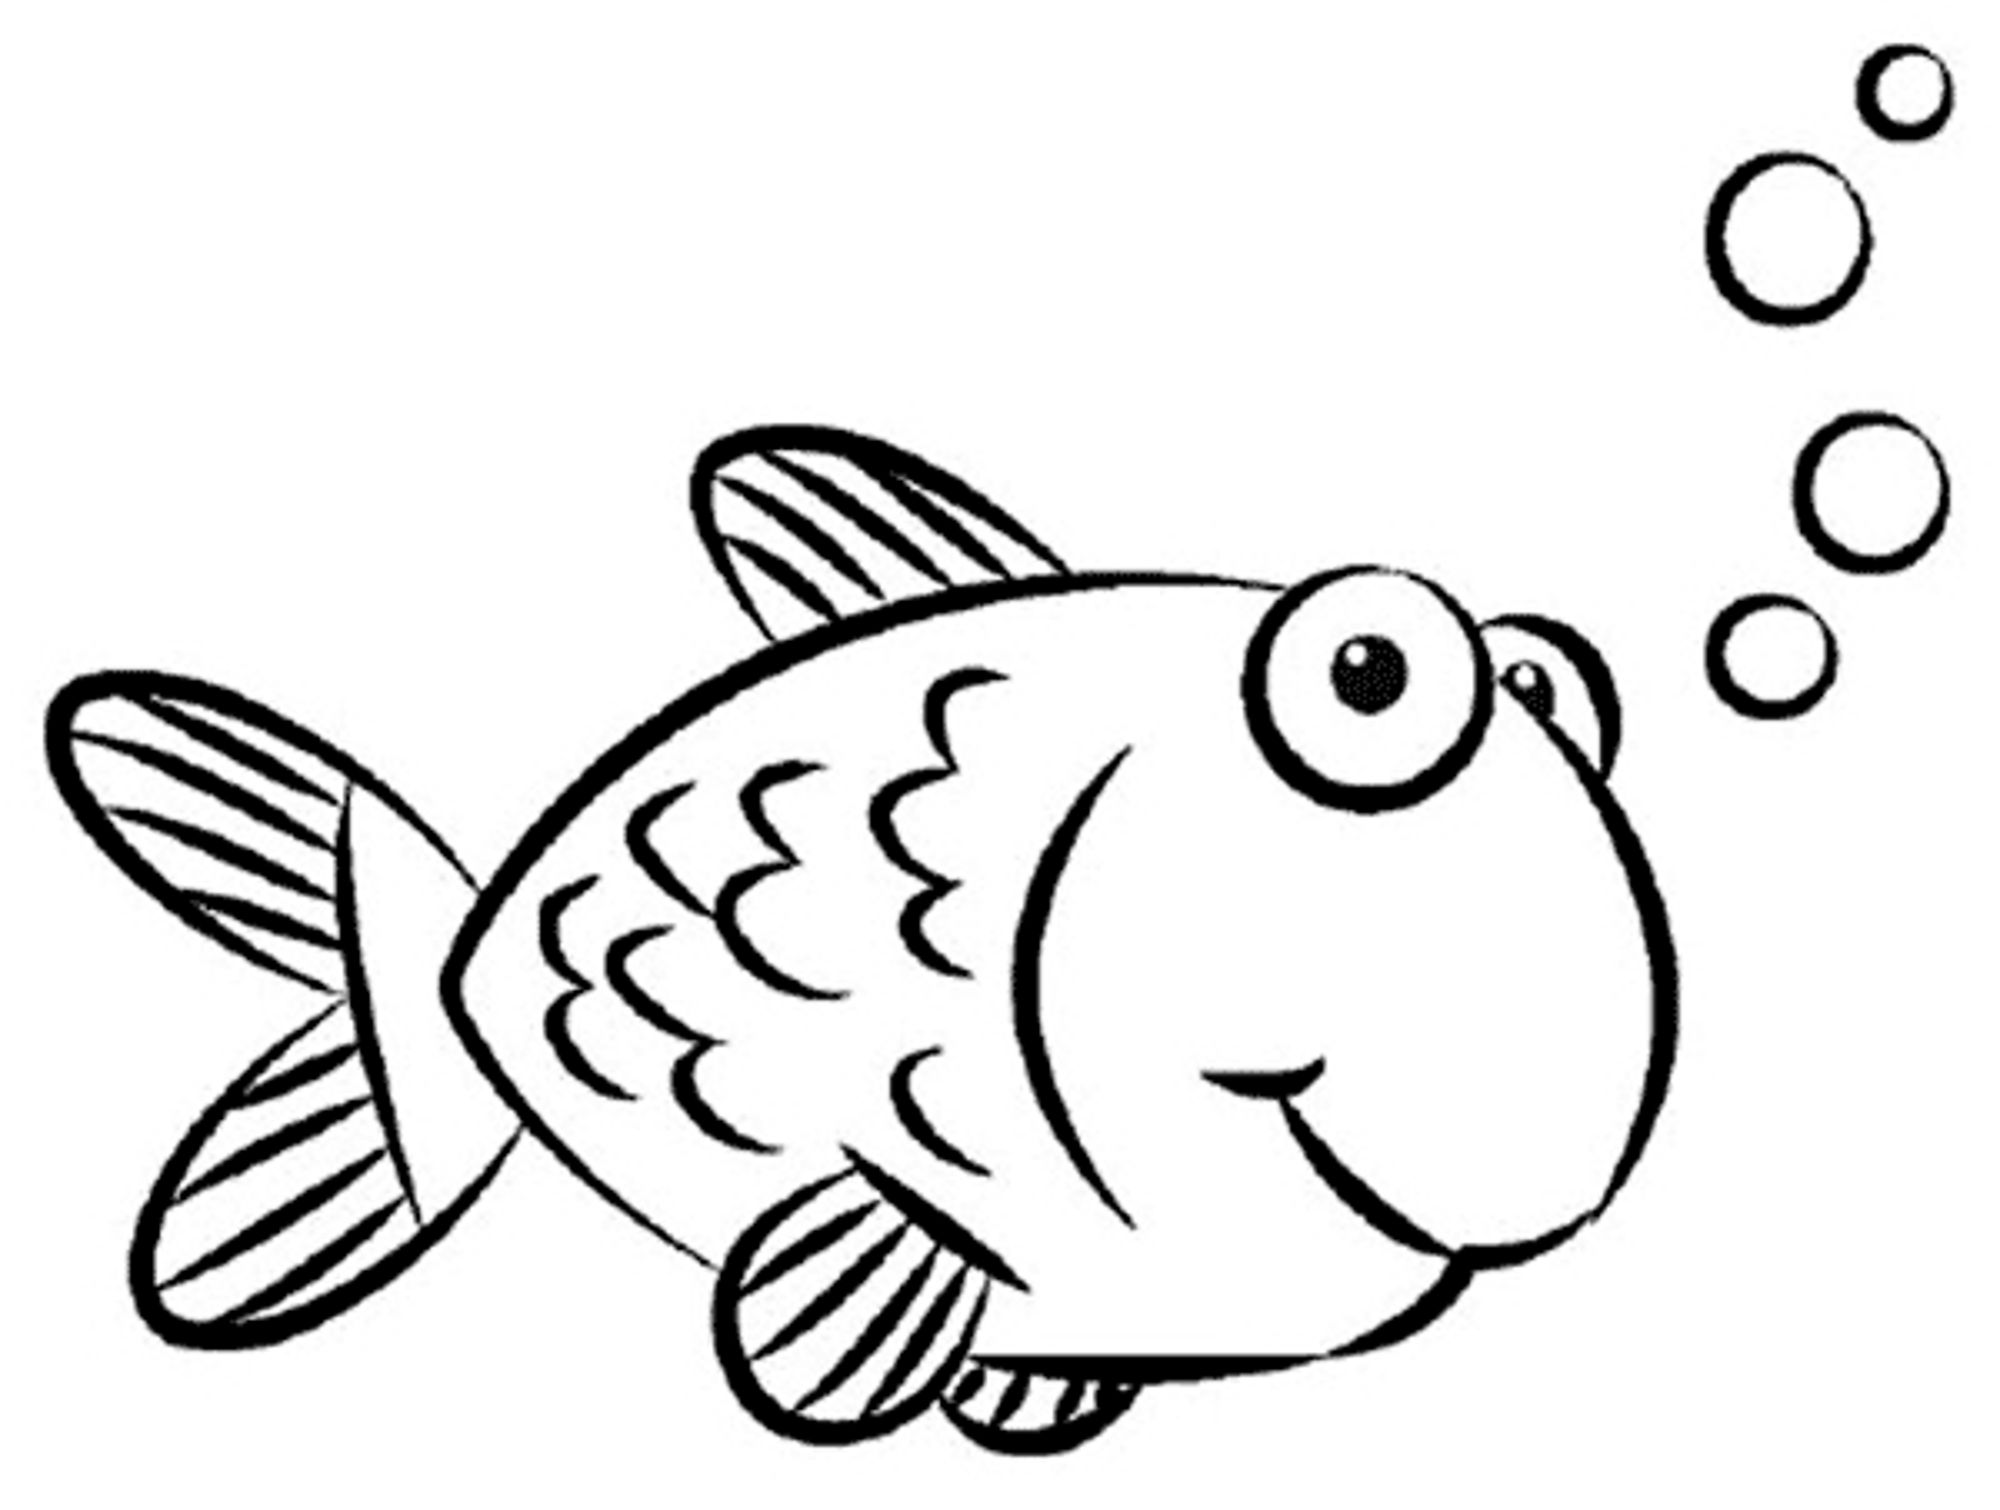 Free Fish Drawing For Kids, Download Free Clip Art, Free.